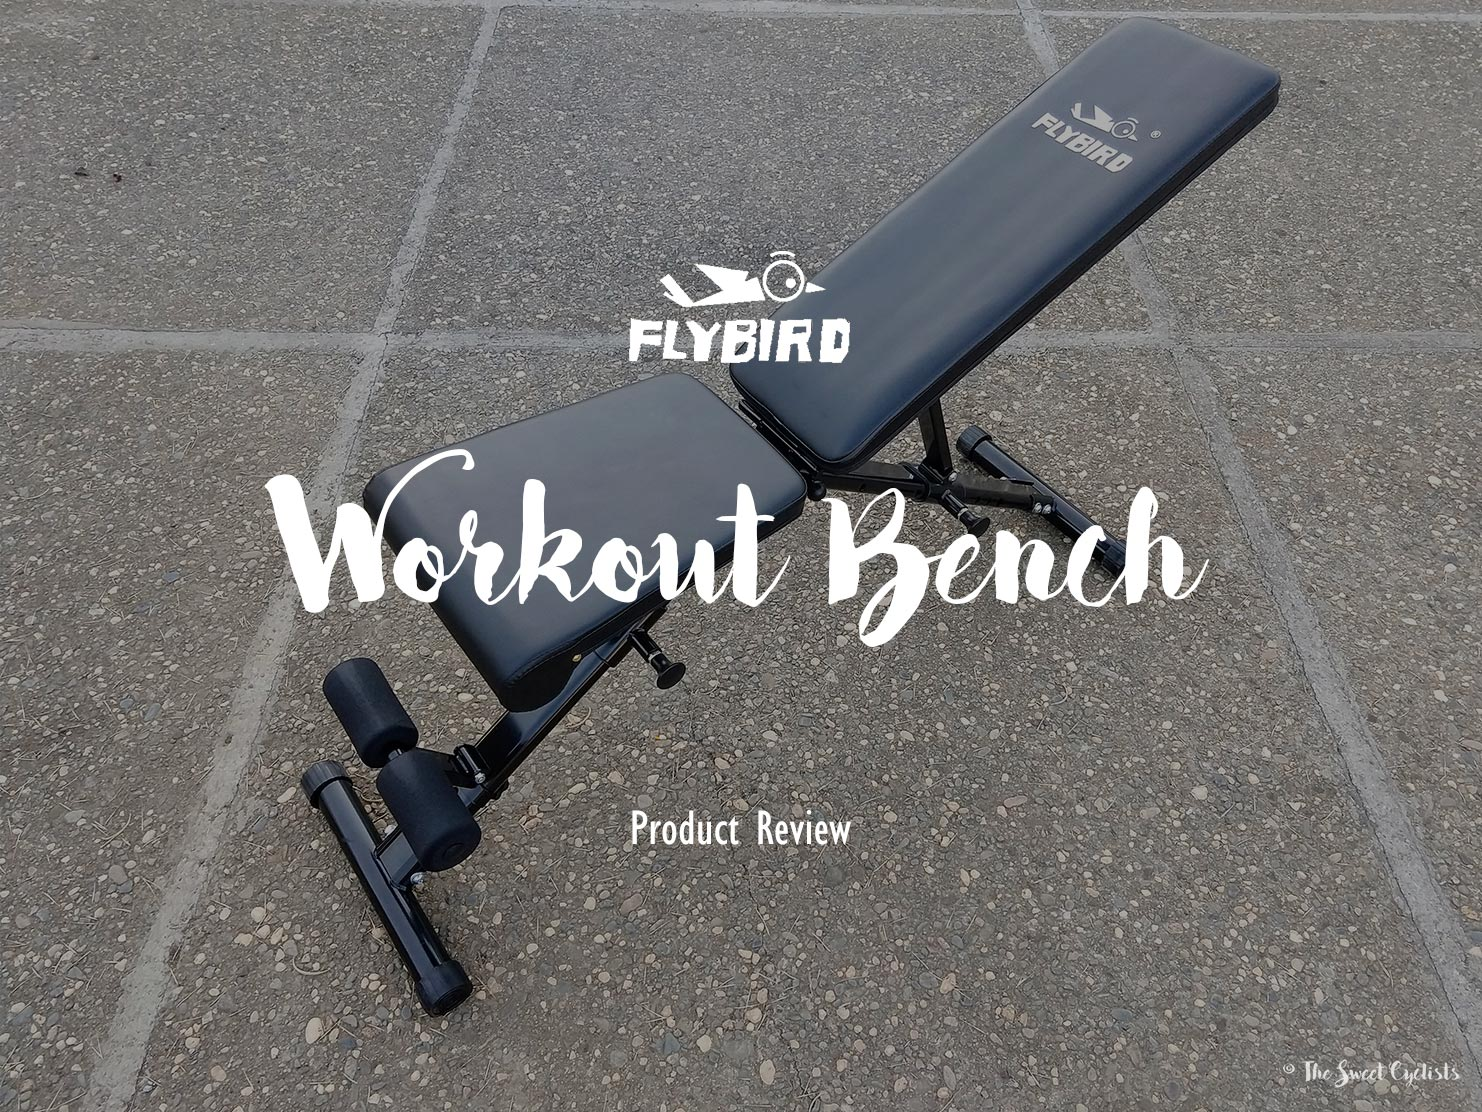 An Affordable Incline/Decline Workout Bench